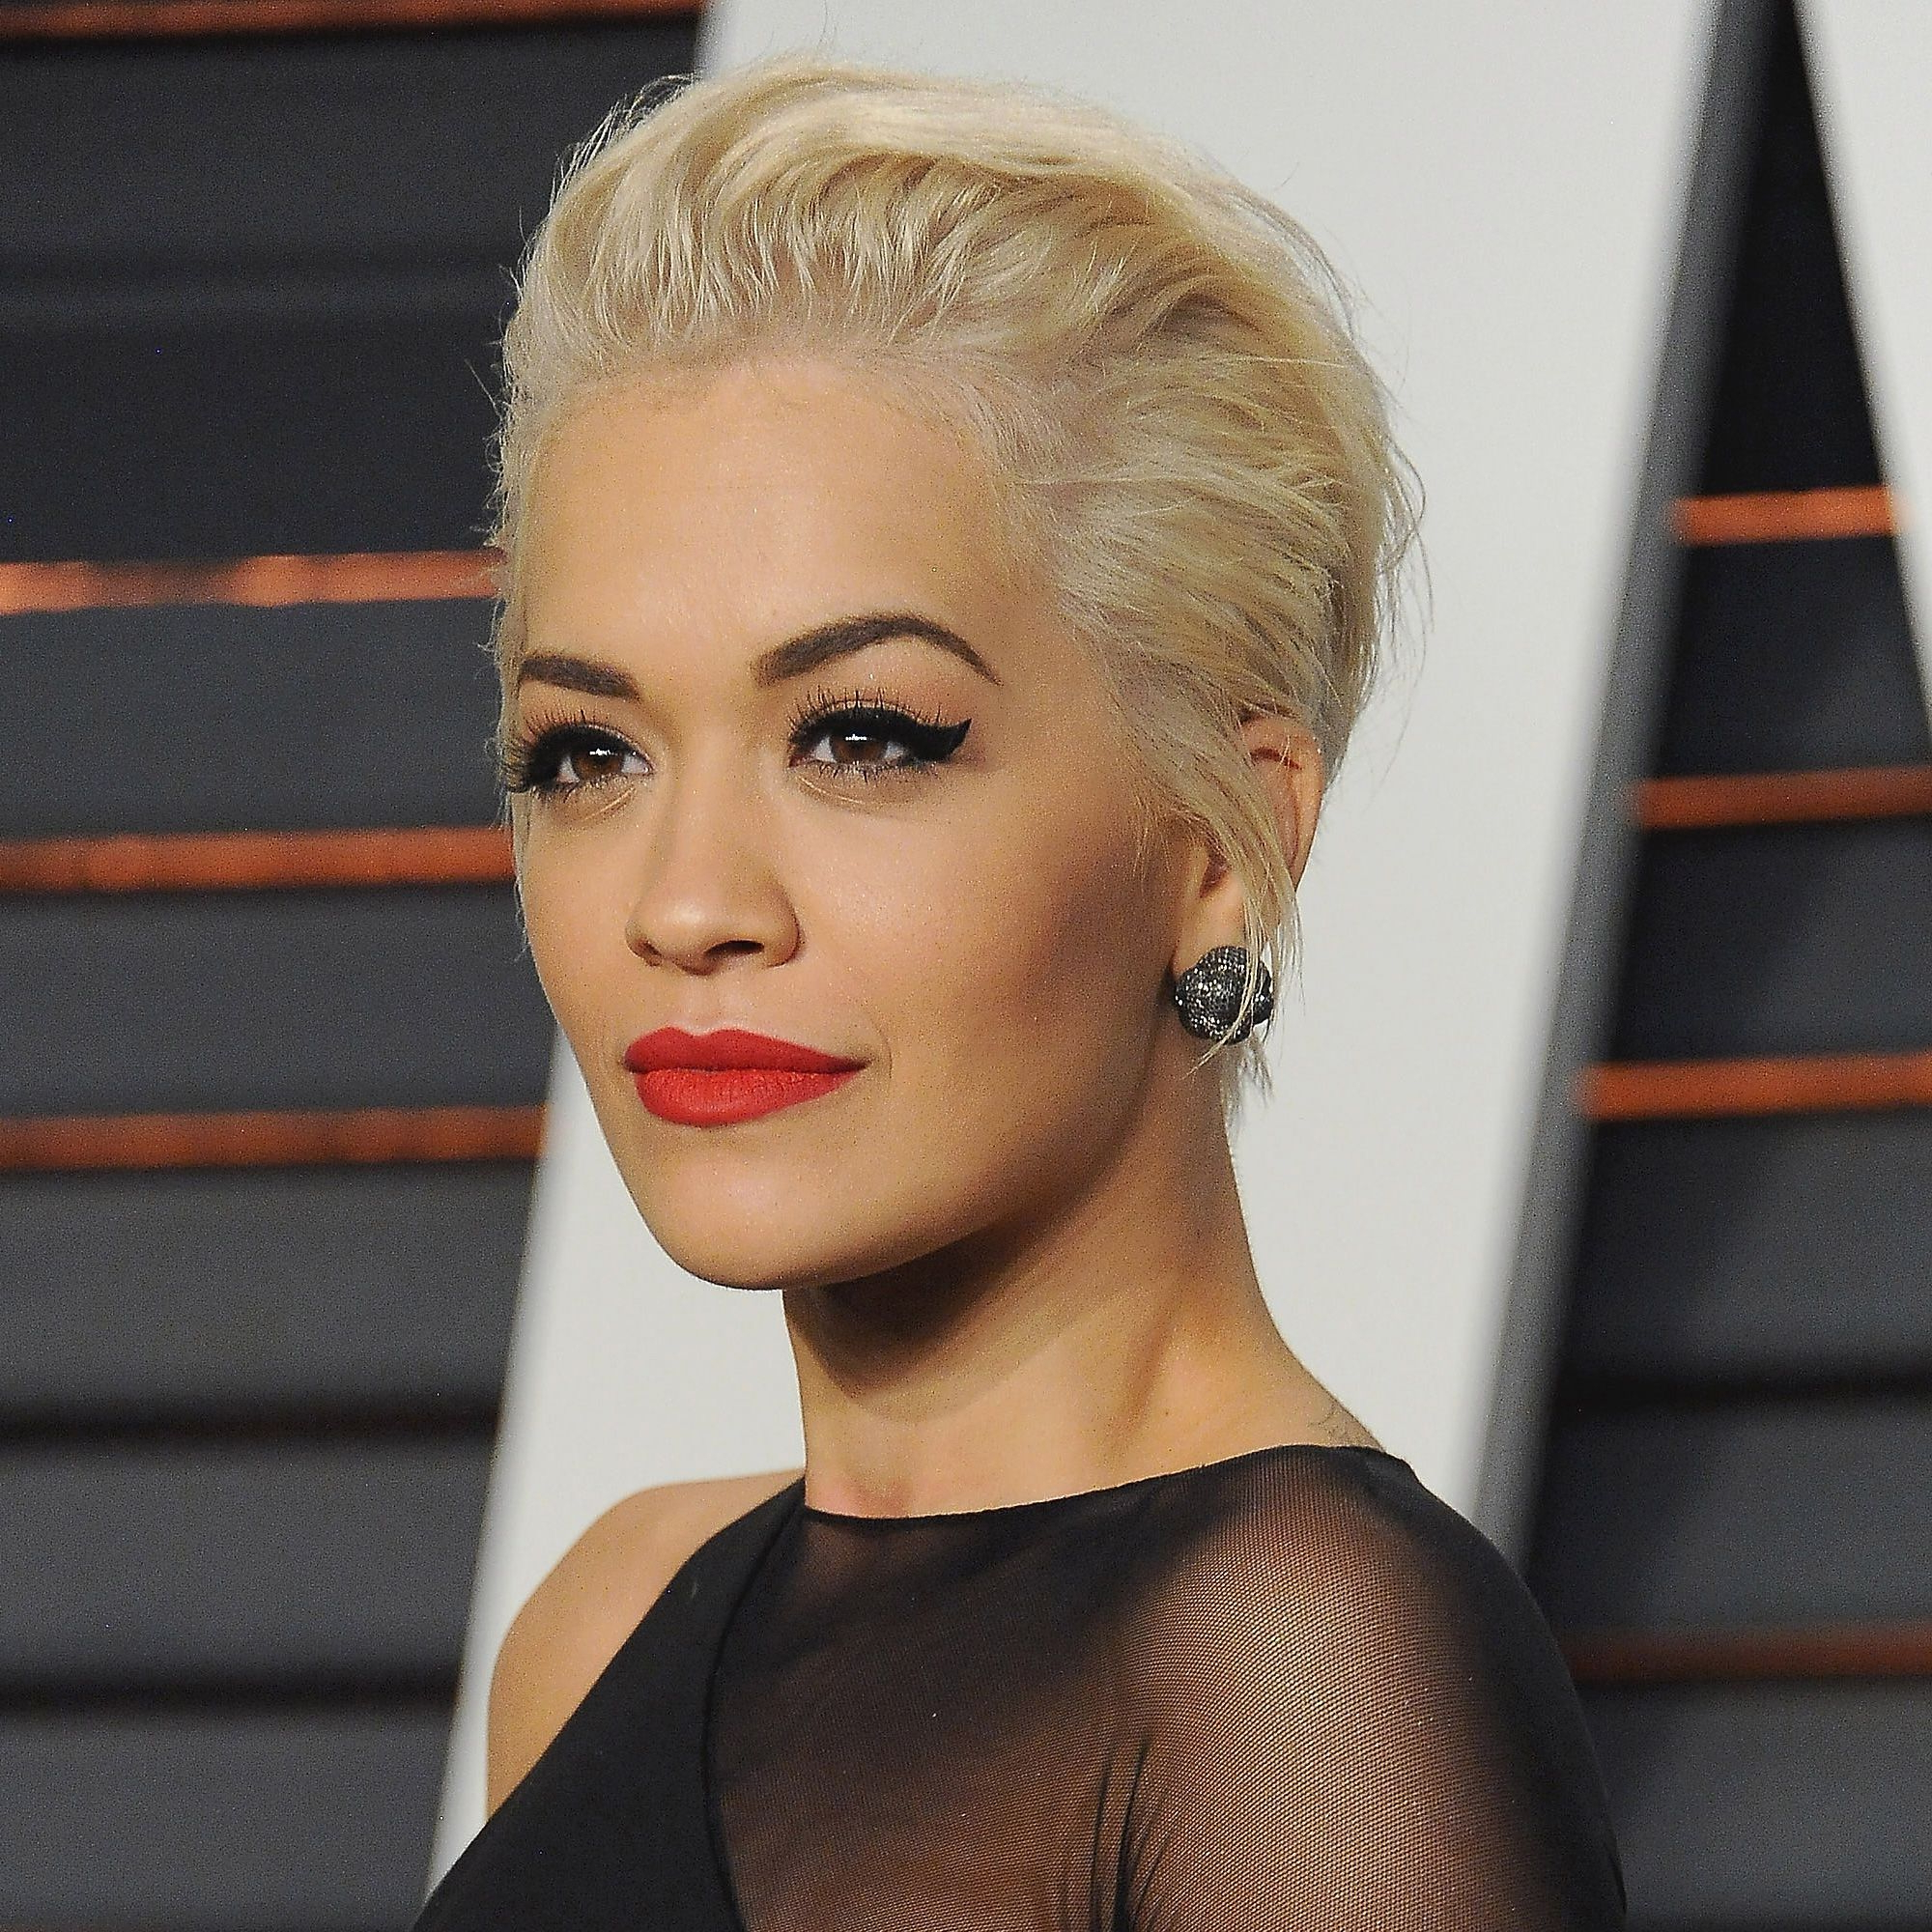 87 Cute Short Hairstyles & Haircuts – How To Style Short Hair For Rita Ora Short Hairstyles (View 10 of 25)